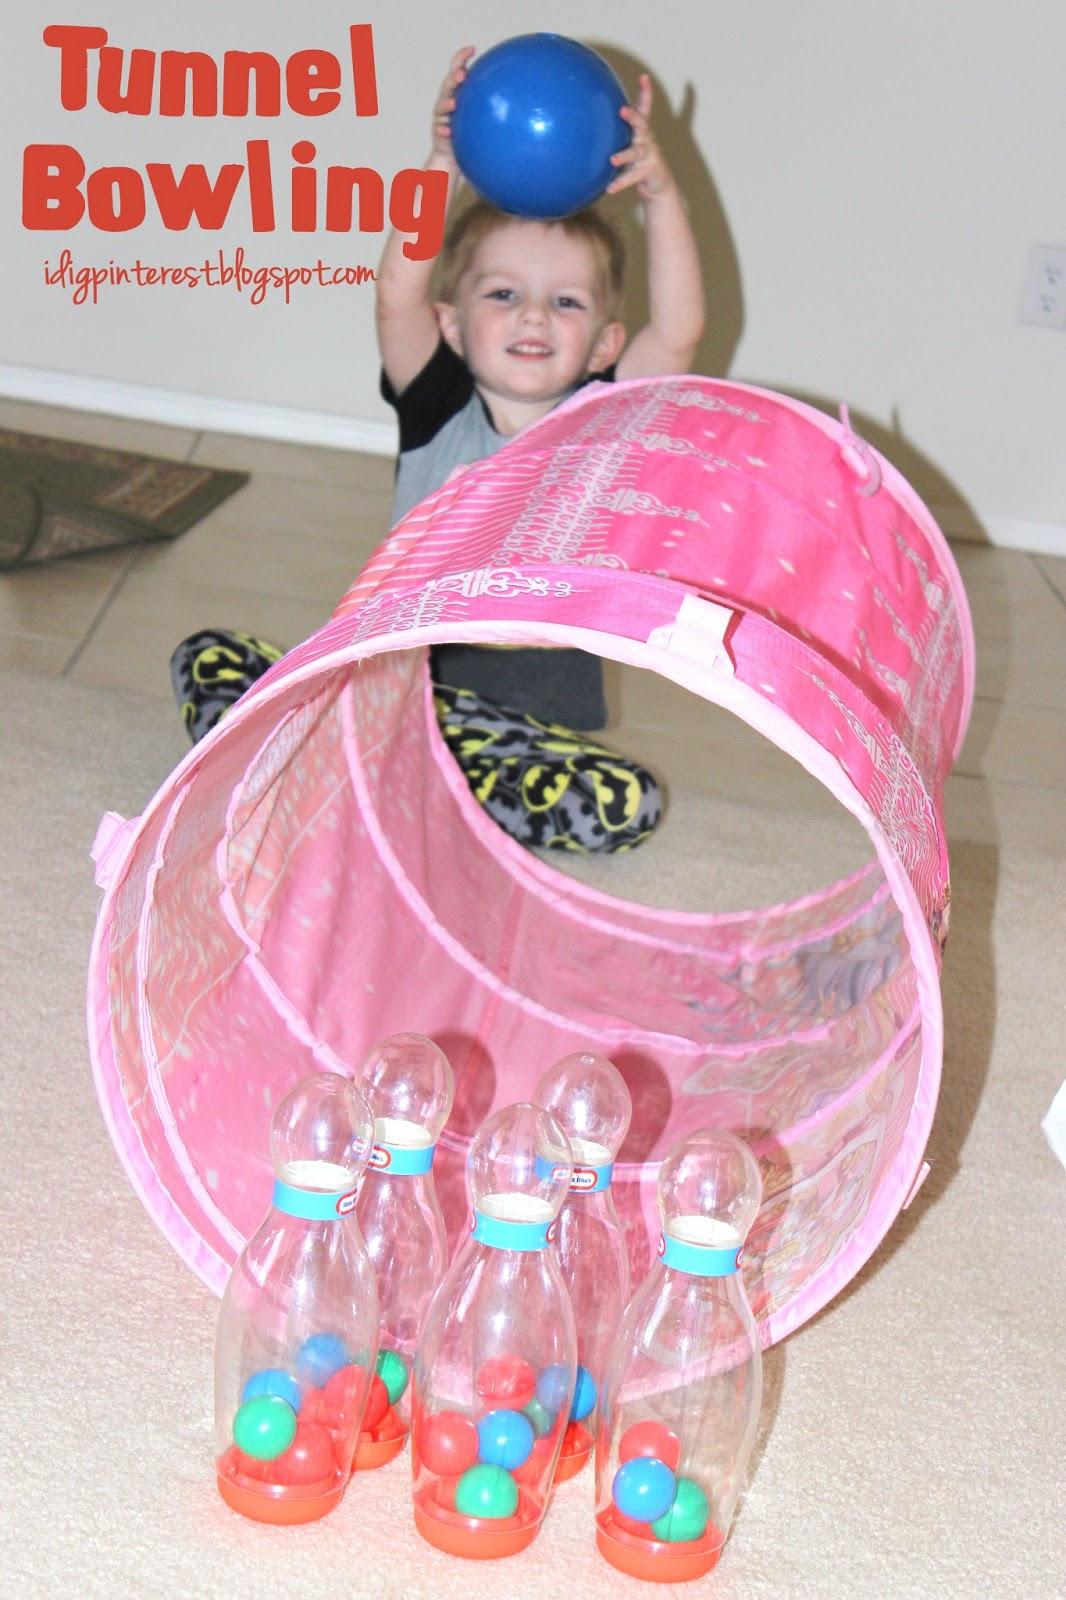 Little Tikes Table And Chairs Set Toys R Us Air Horn Office Chair Tunnel Bowling - I Dig Pinterest